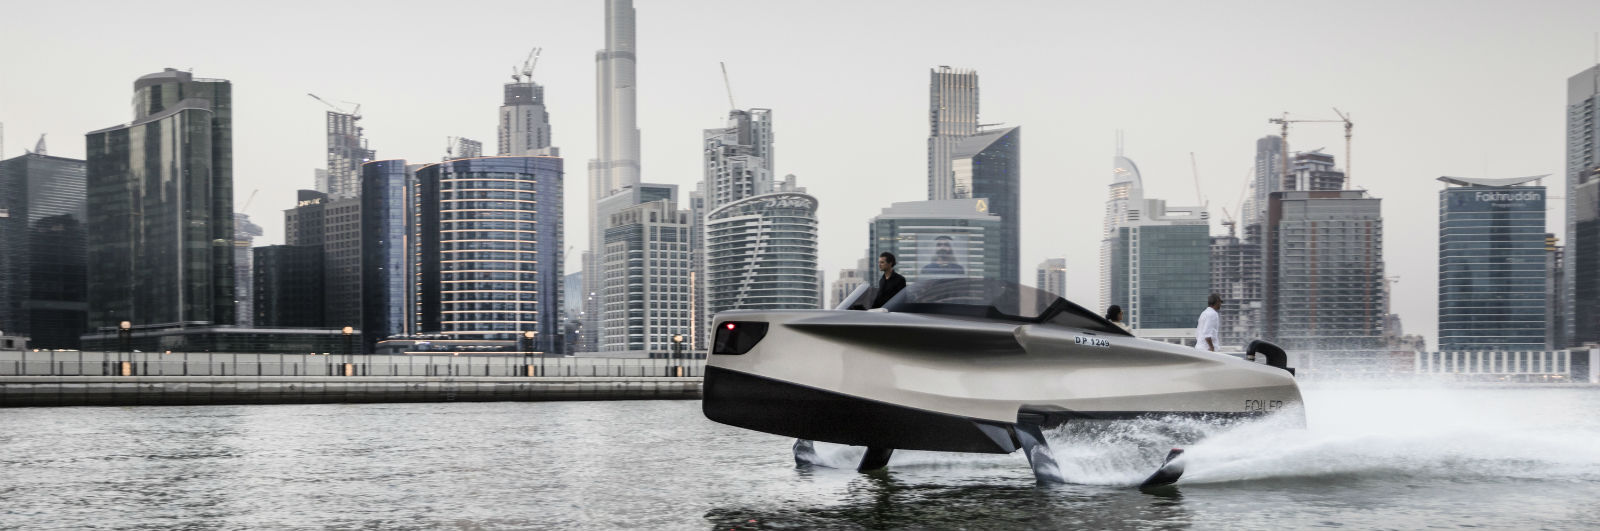 A Personal Yacht That Flies Over the Water